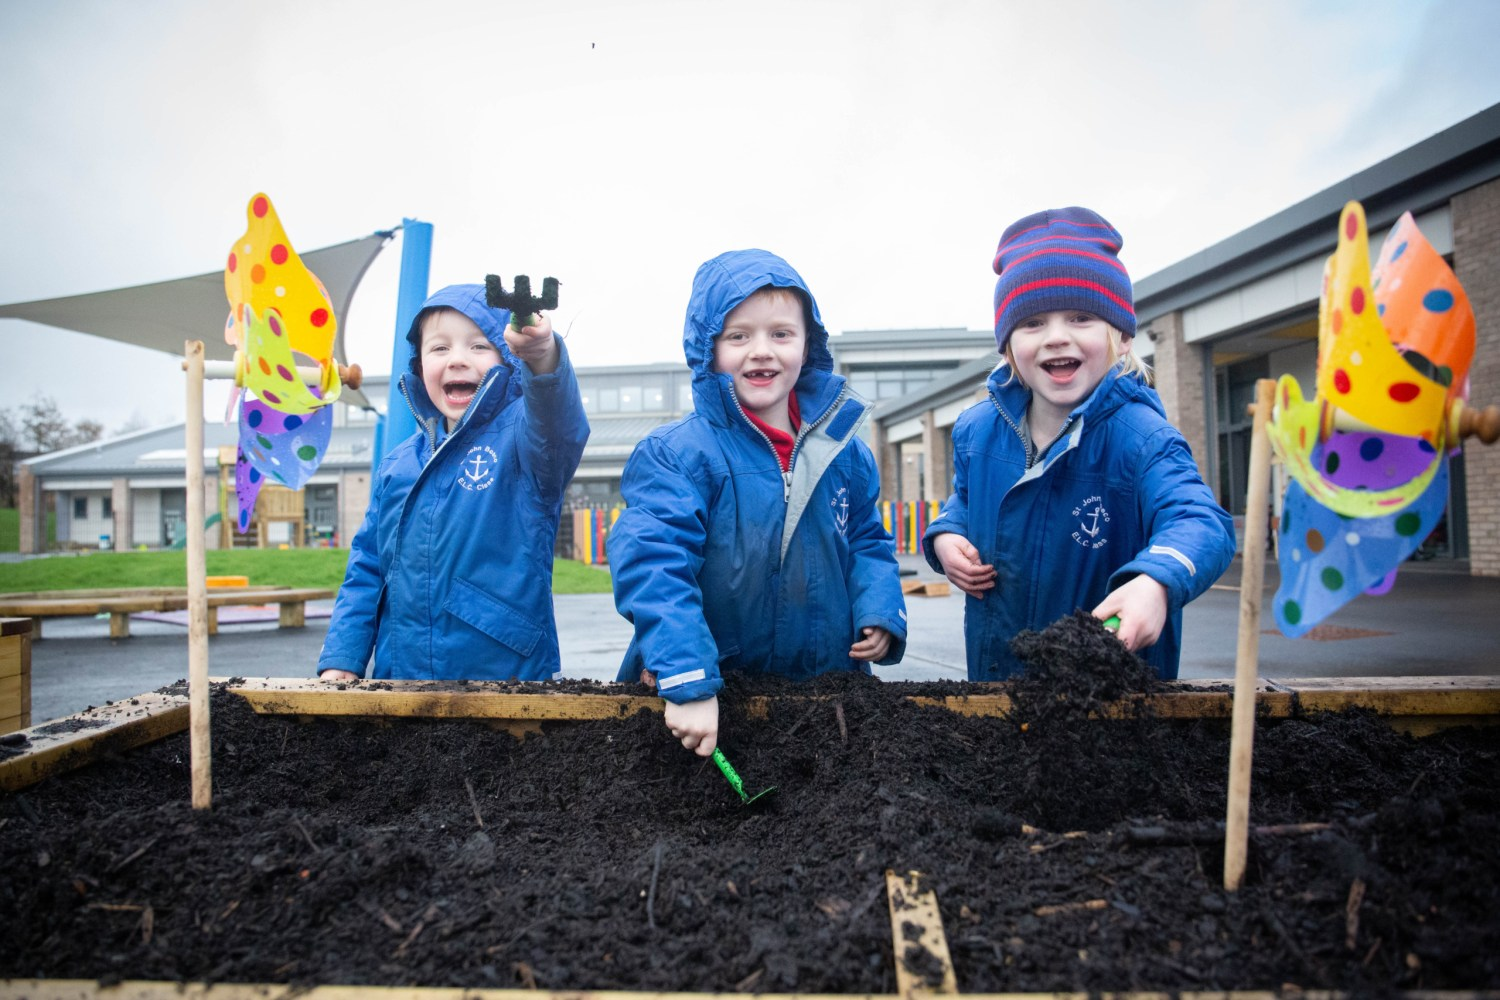 St John Bosco Nursery